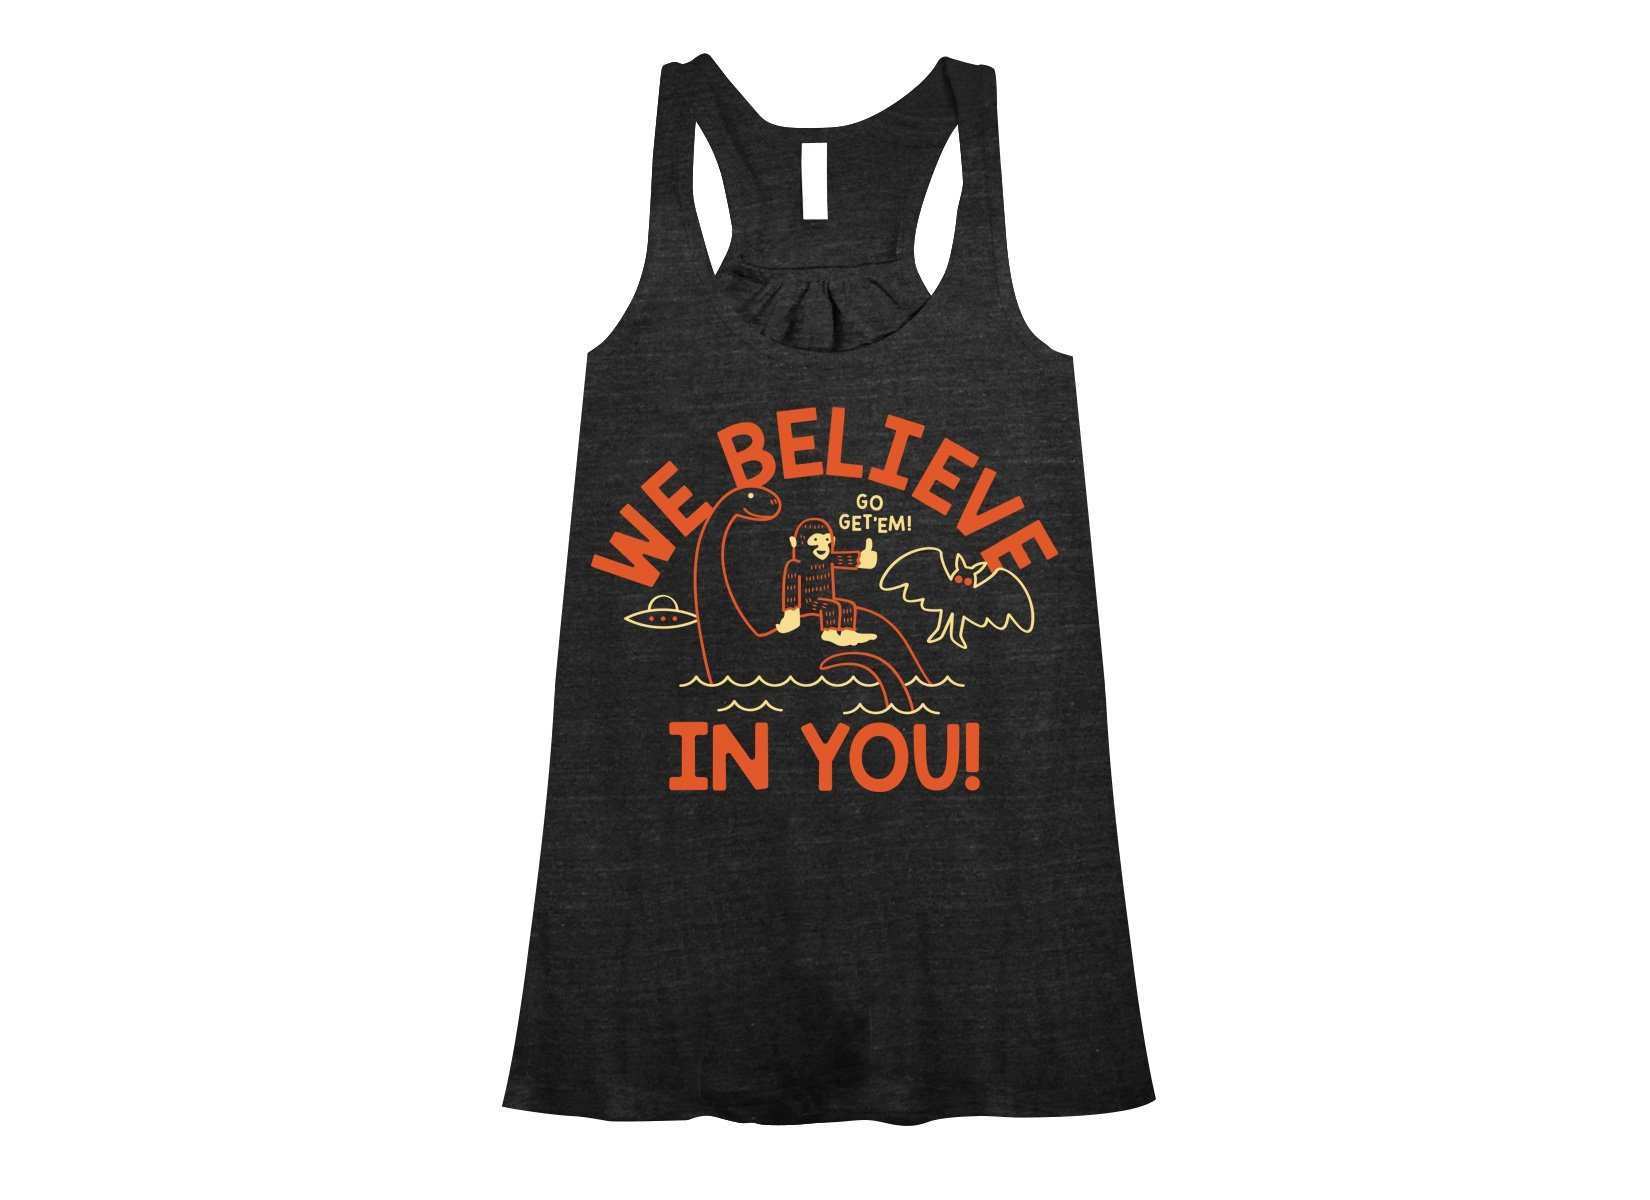 We Believe In You! on Womens Tanks T-Shirt